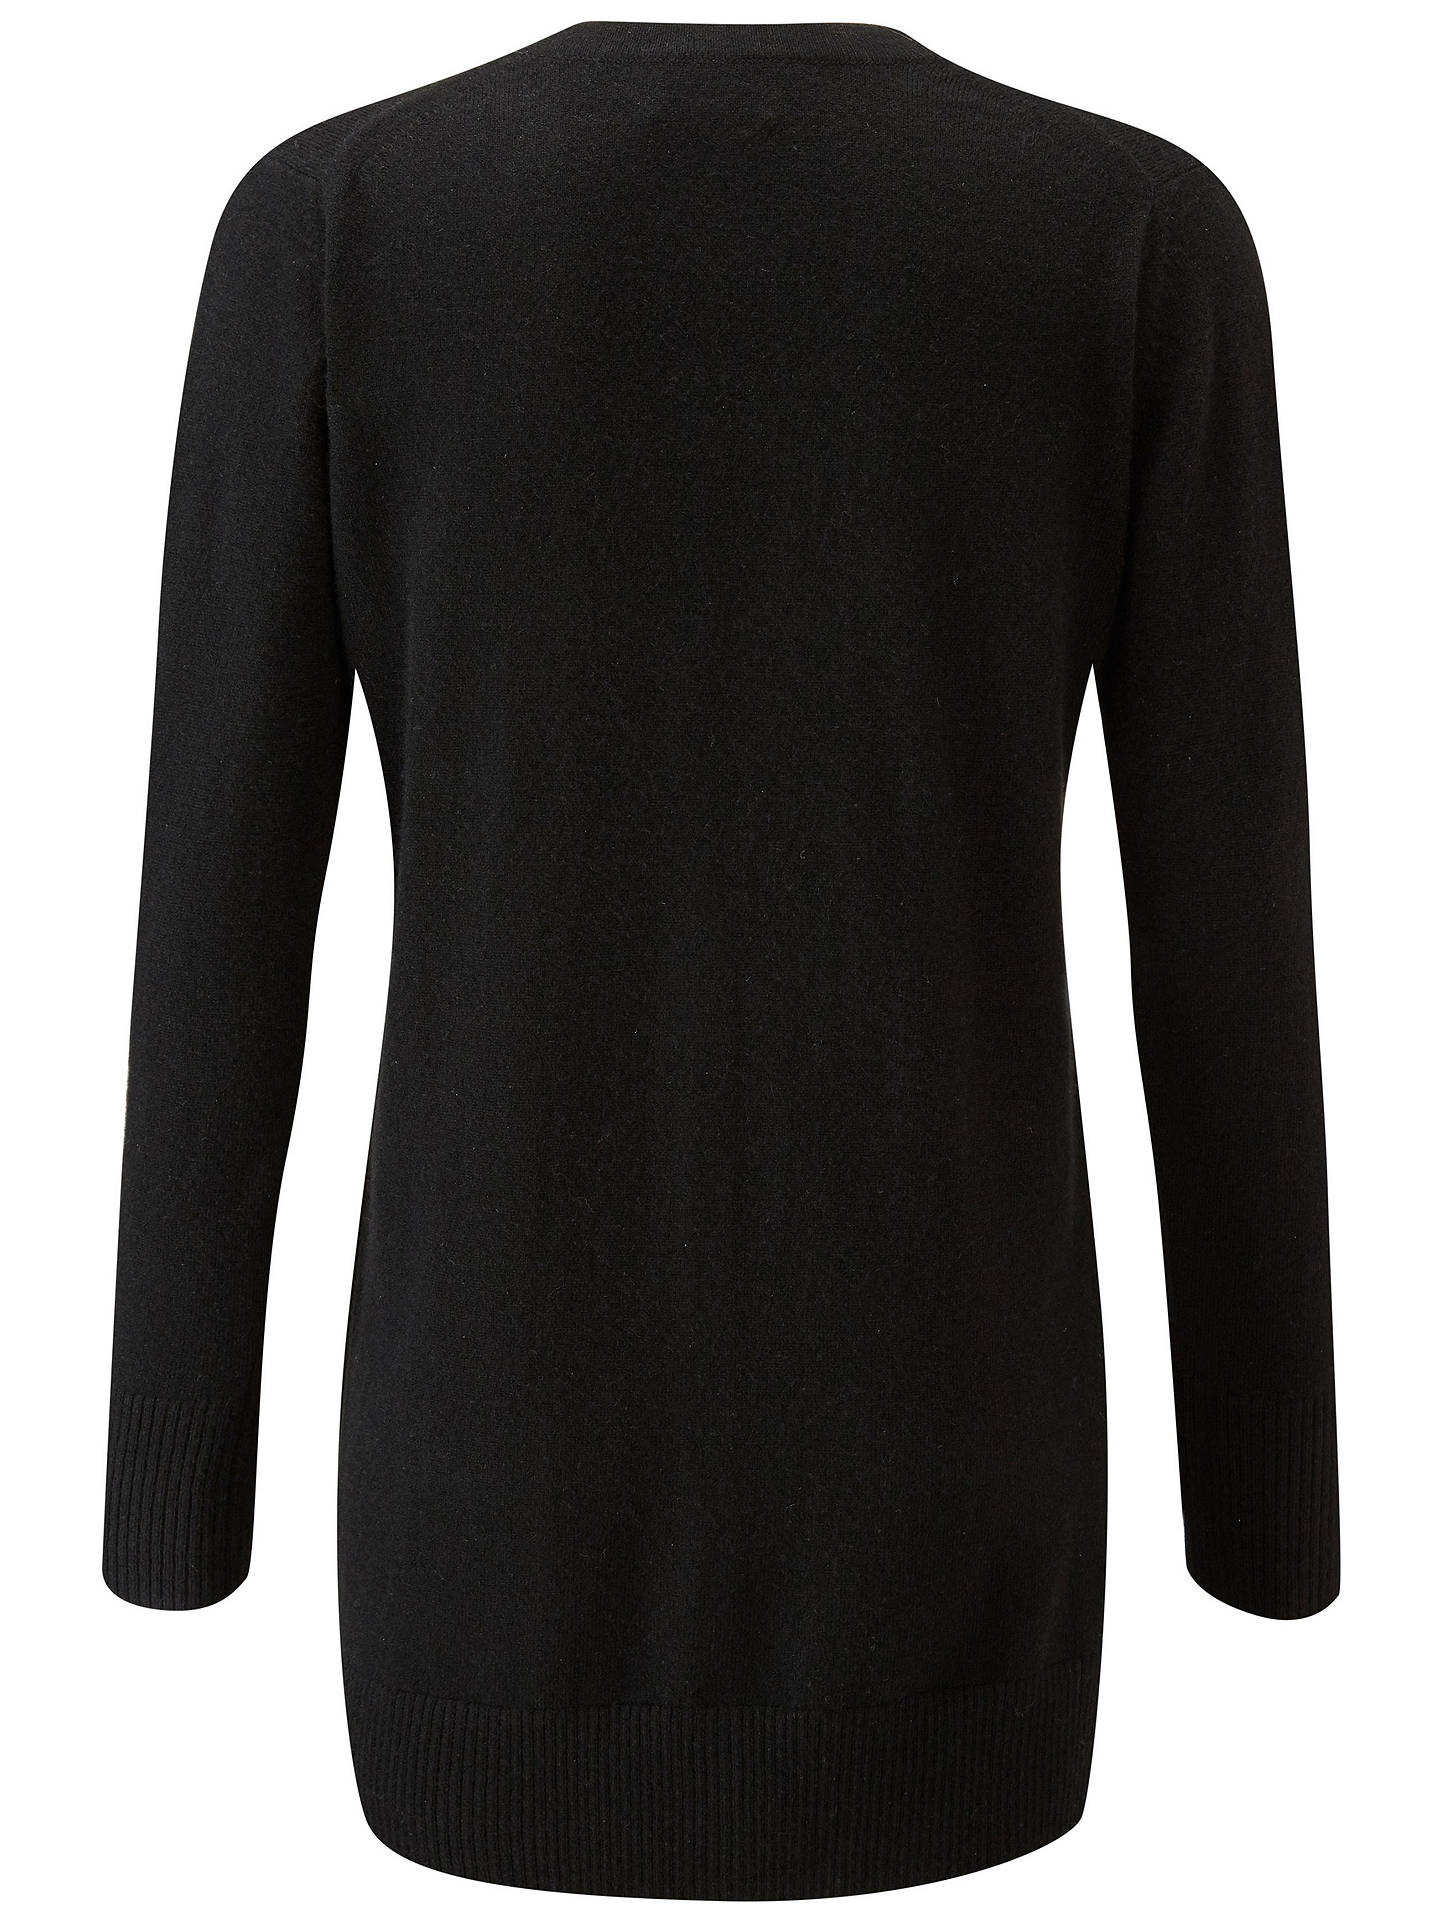 Buy Pure Collection Cashmere Boyfriend Cardigan, Black, 20 Online at johnlewis.com